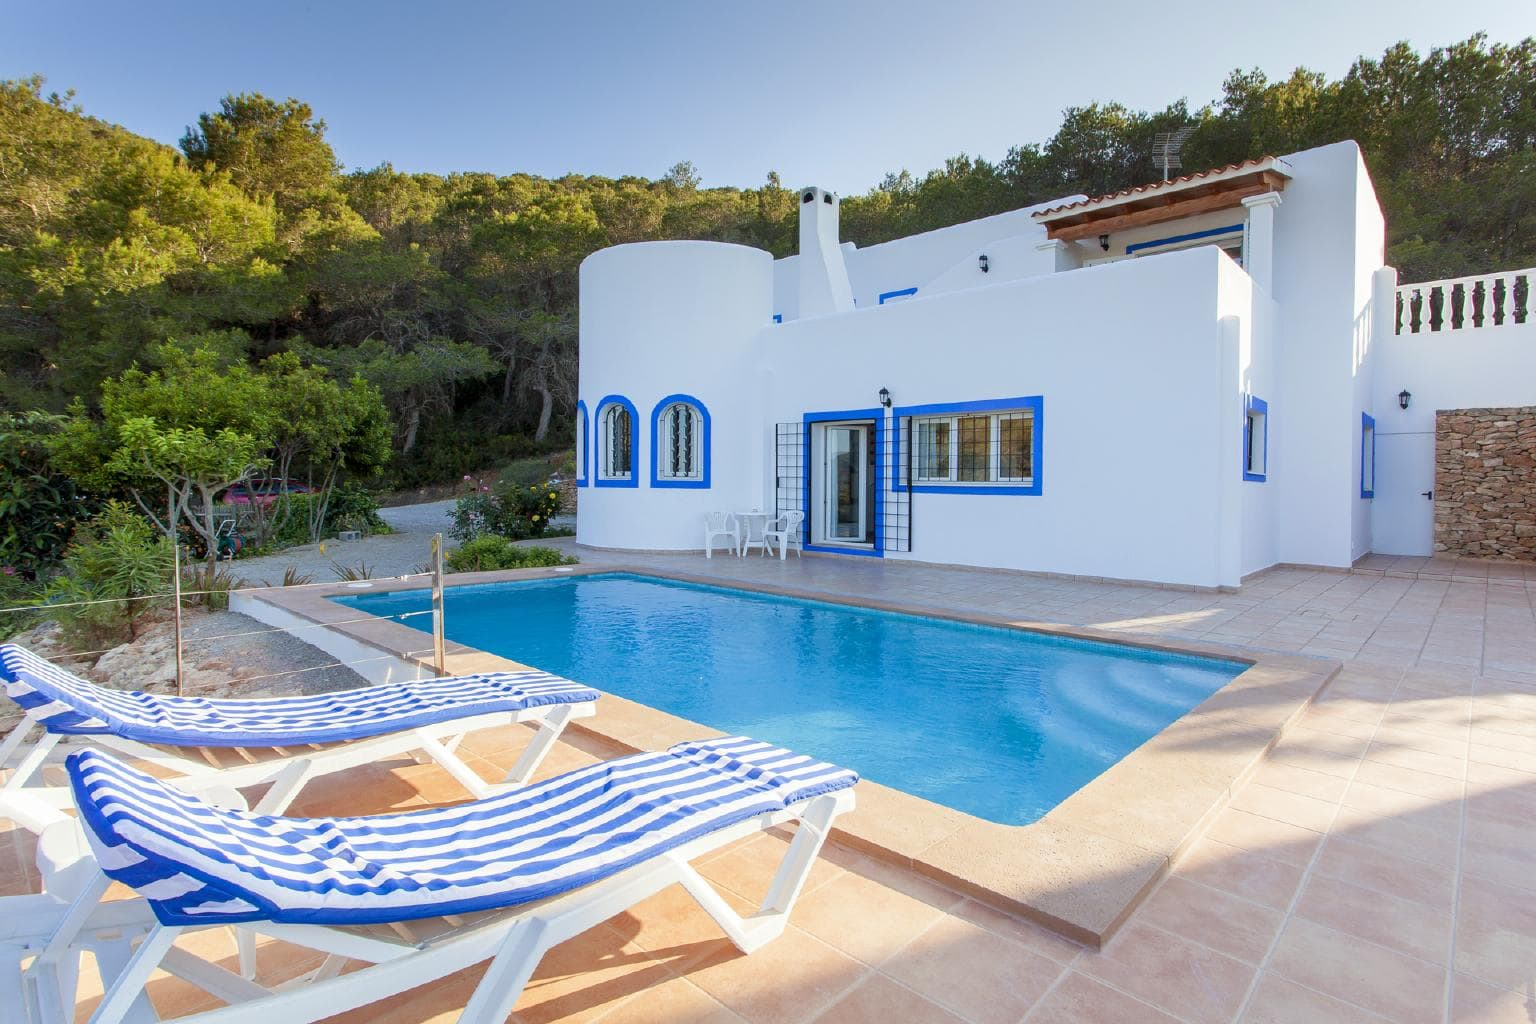 Villa Can Toni in ibiza